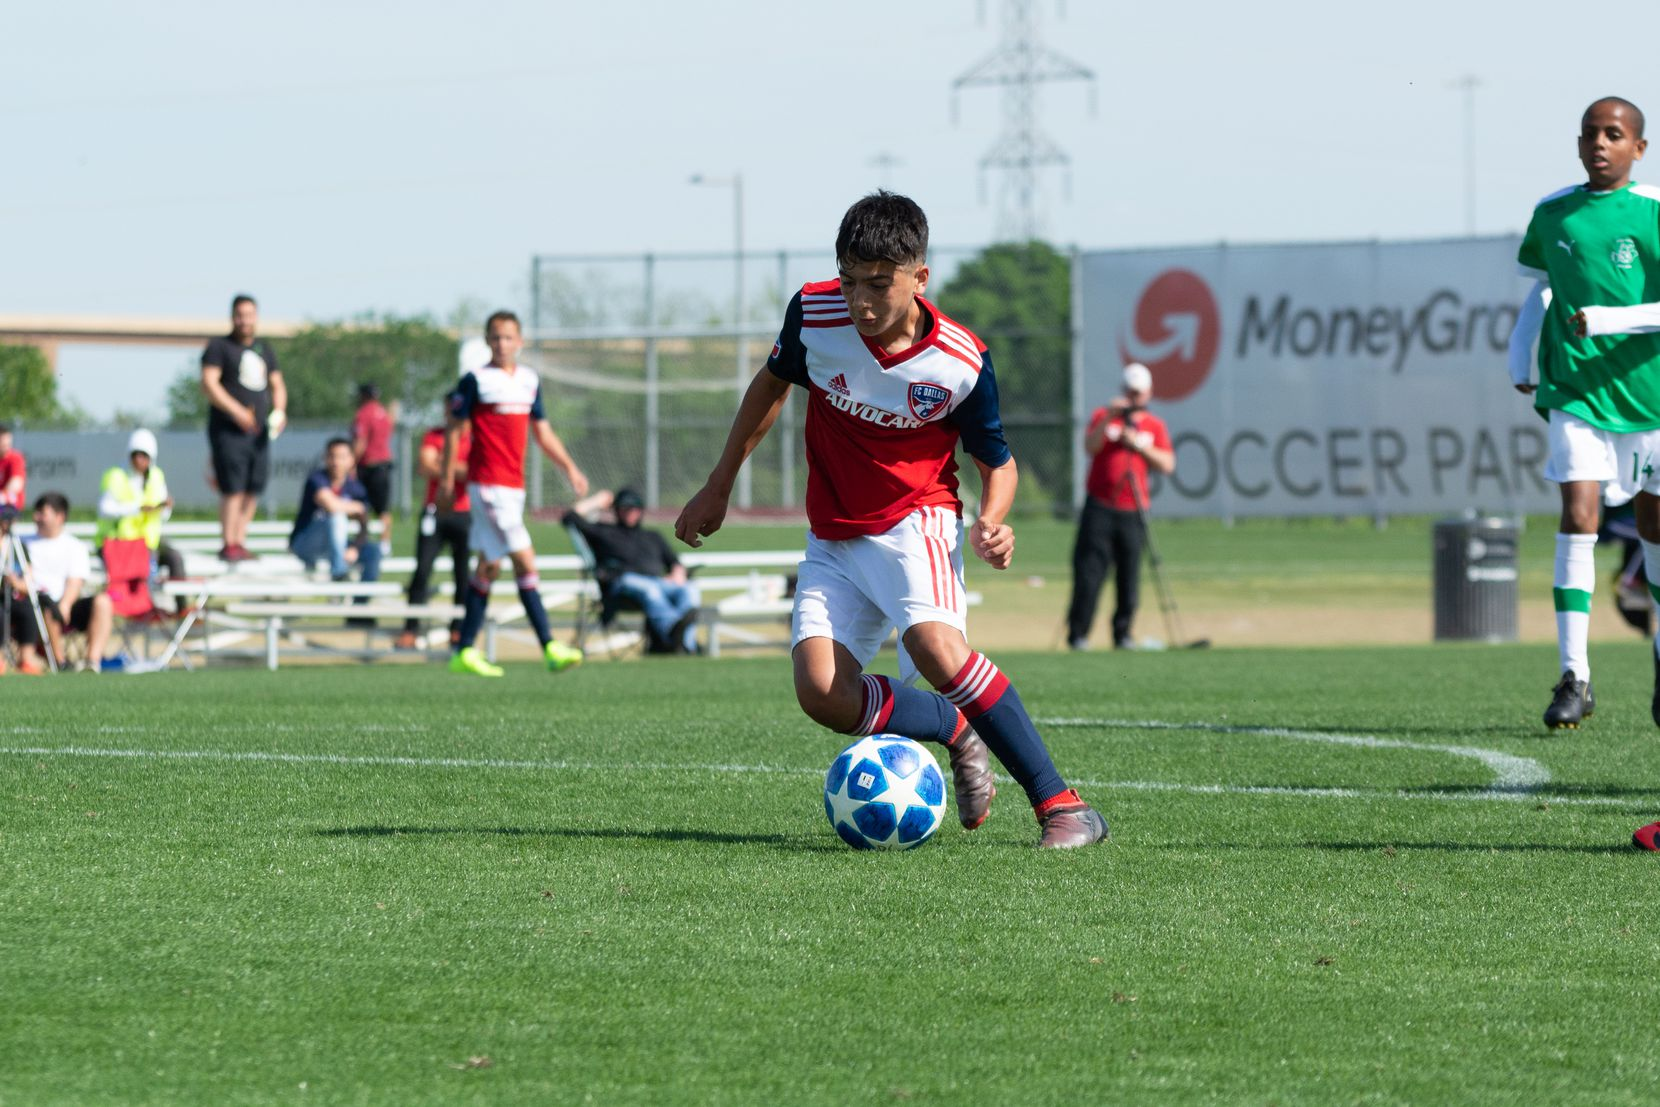 Diego Hernandez on the ball for FC Dallas in the 2019 Dallas Cup against Ikapa United.